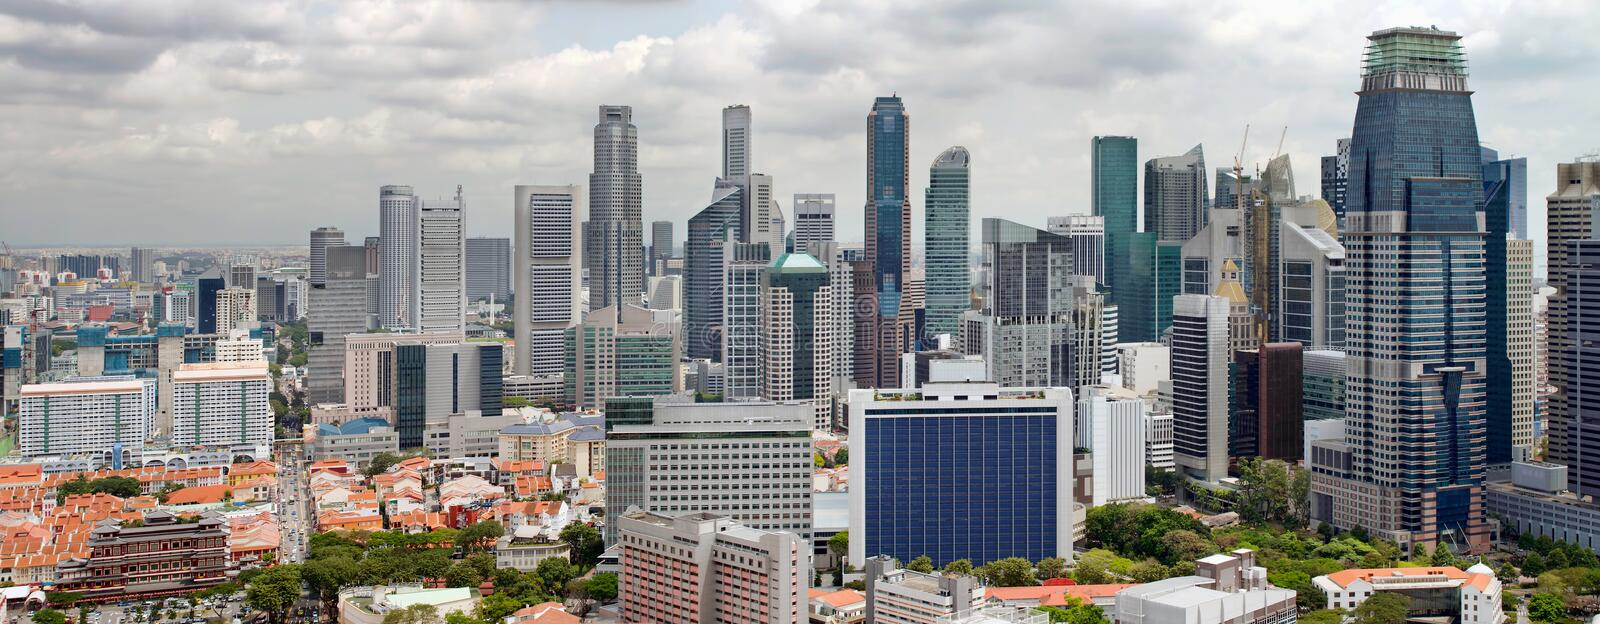 Singapore Cityscape Central Business District. Singapore Cityscape with Central Business District and Chinatown View Panorama stock photos